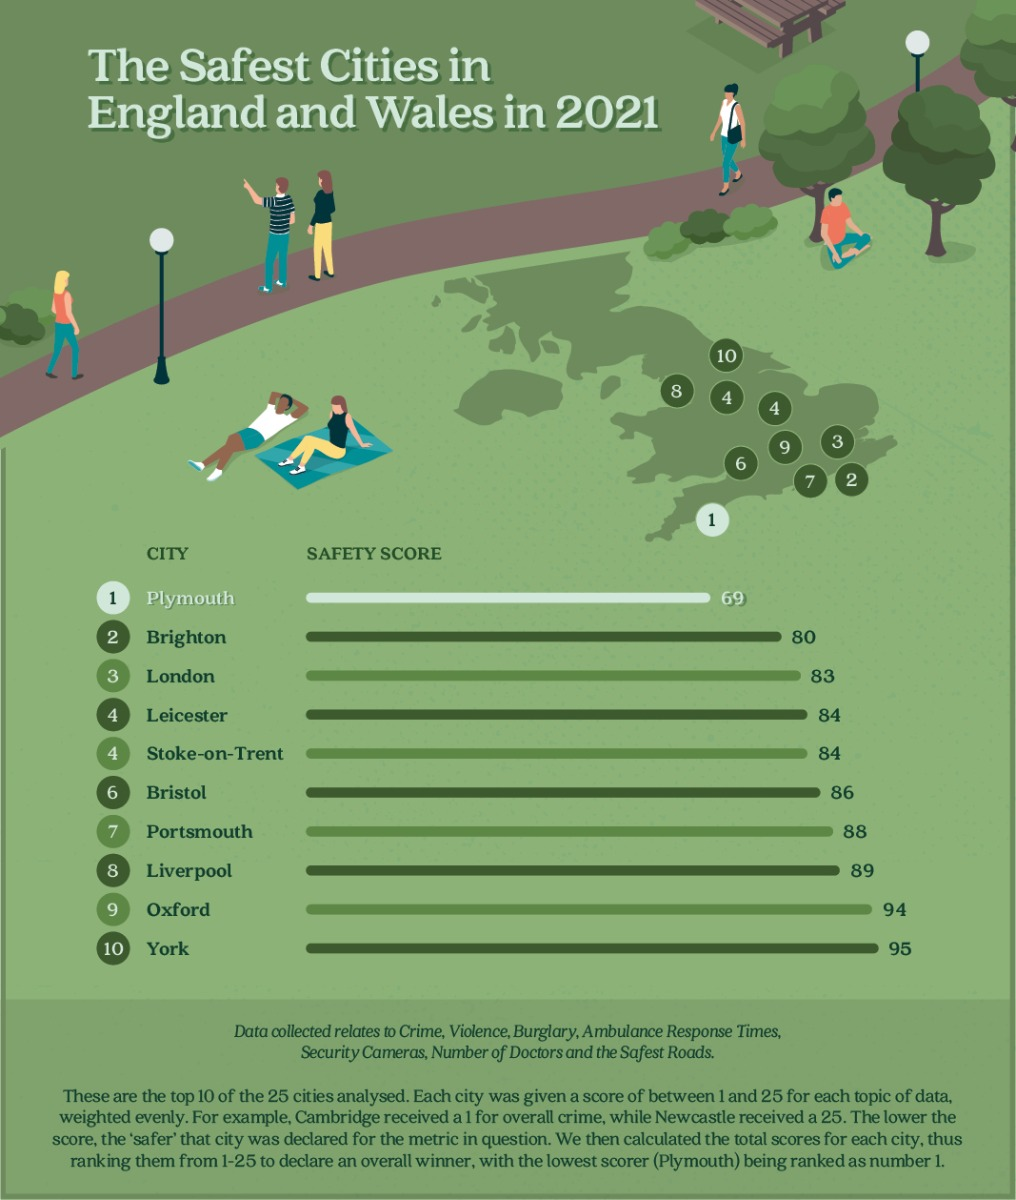 Safest Cities in England and Wales